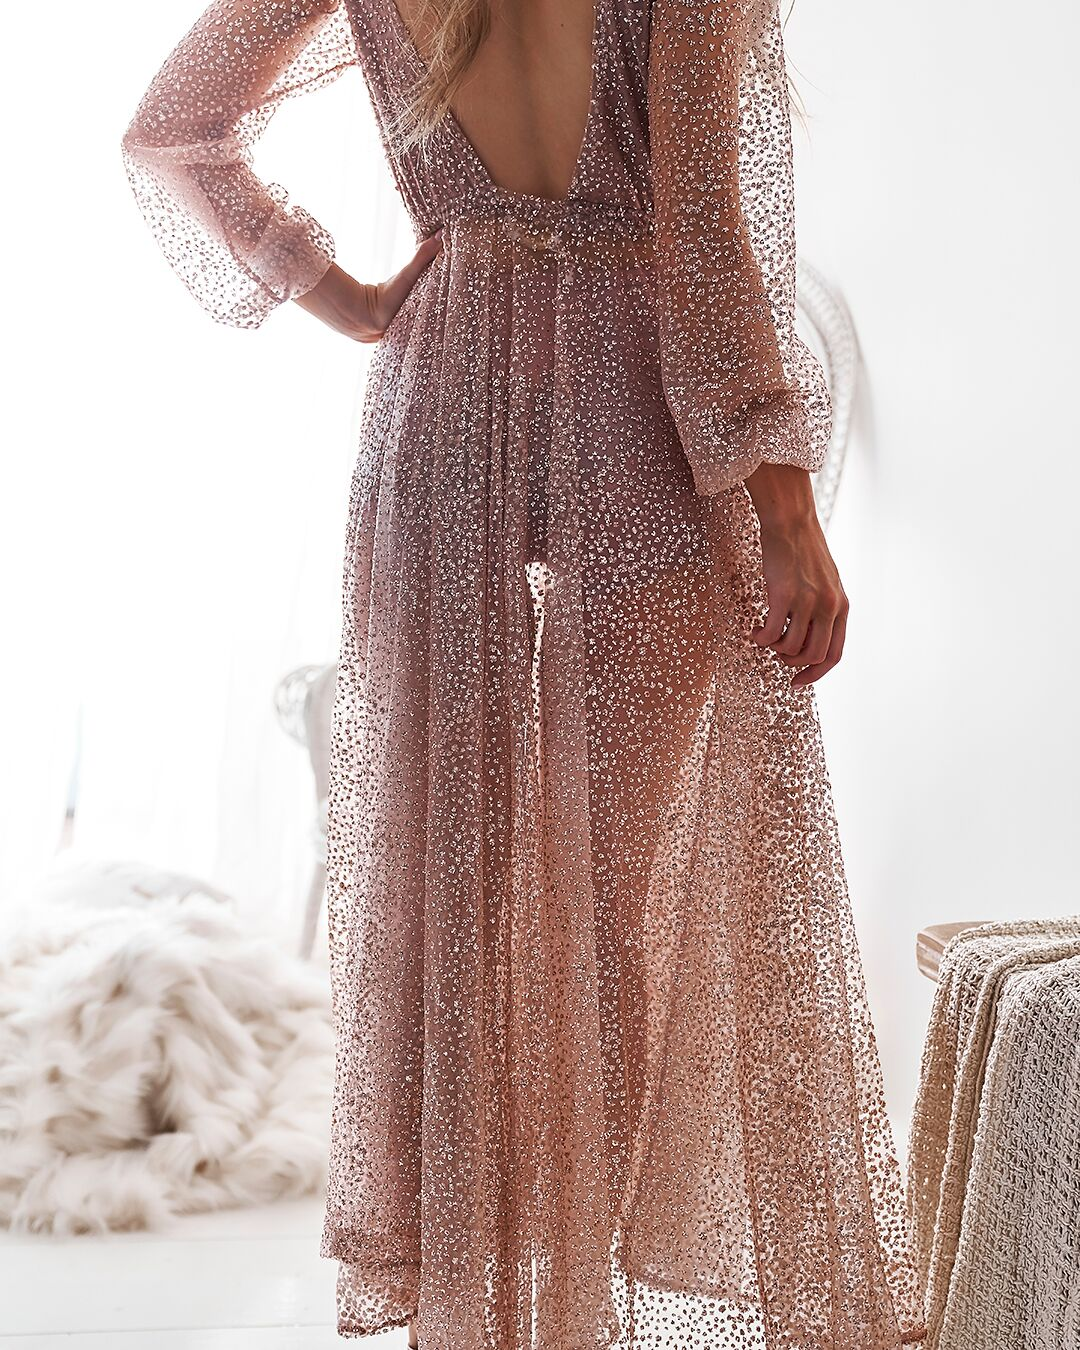 to wear - Dresses Glitter pictures video